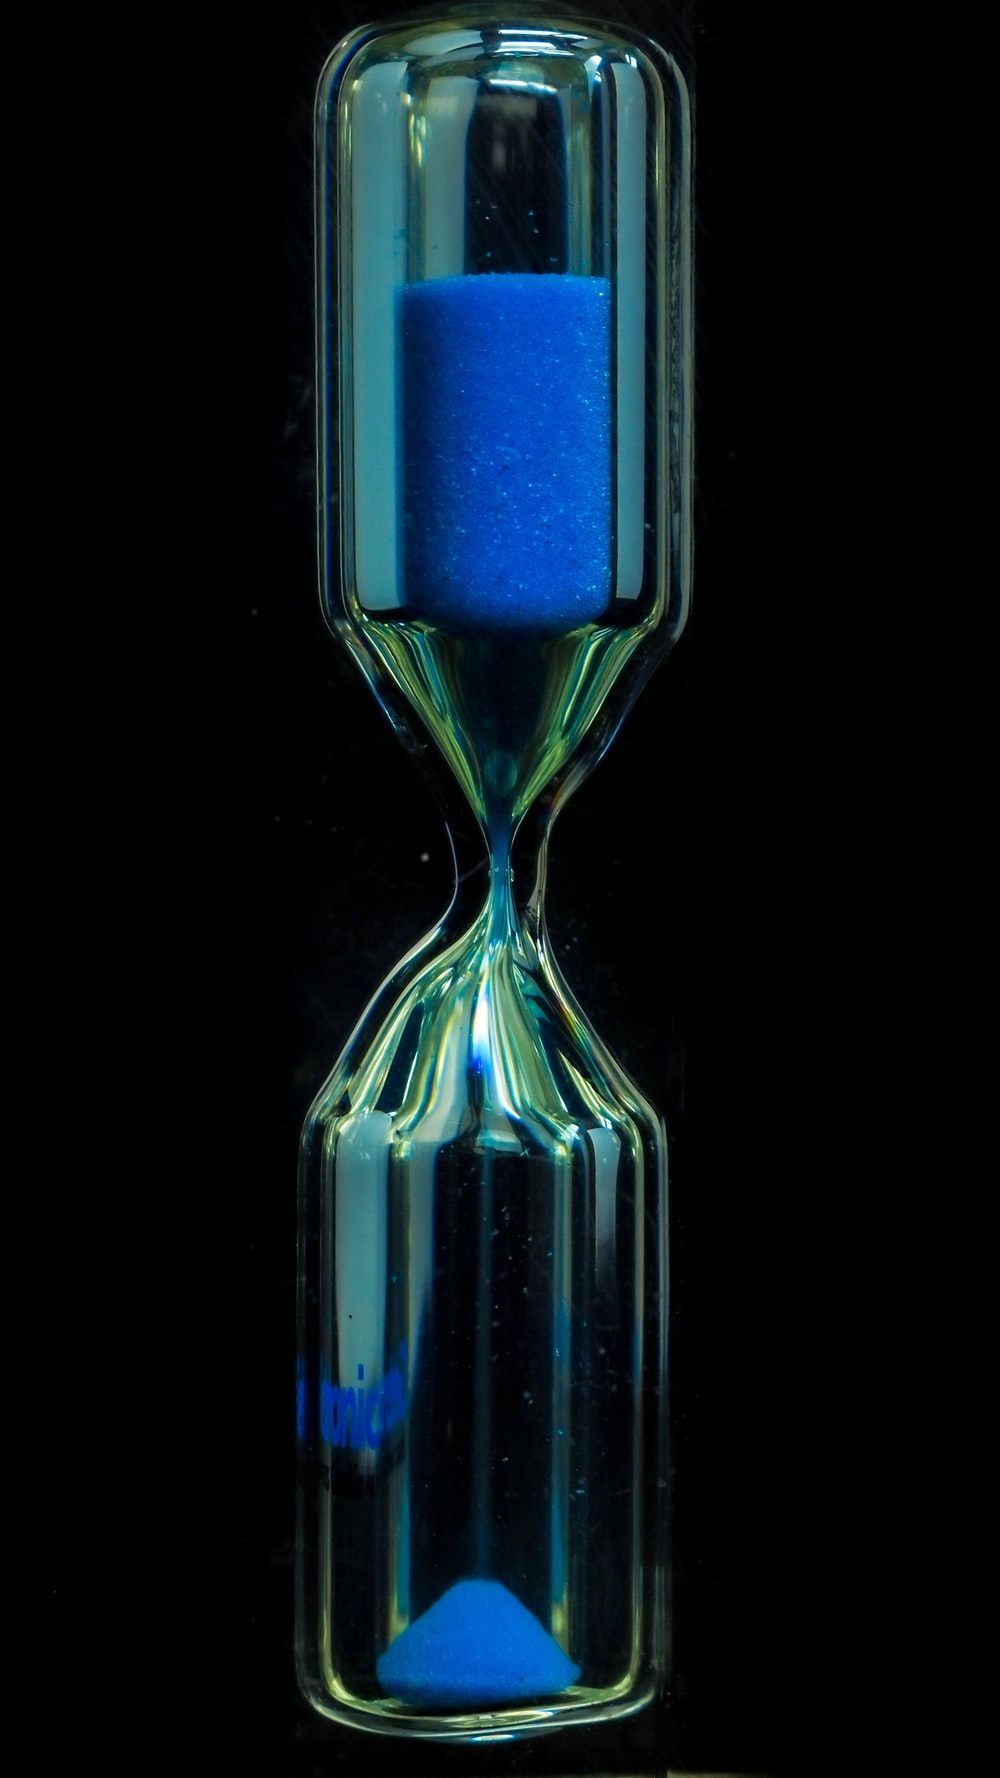 clear glass hour glass with blue liquid